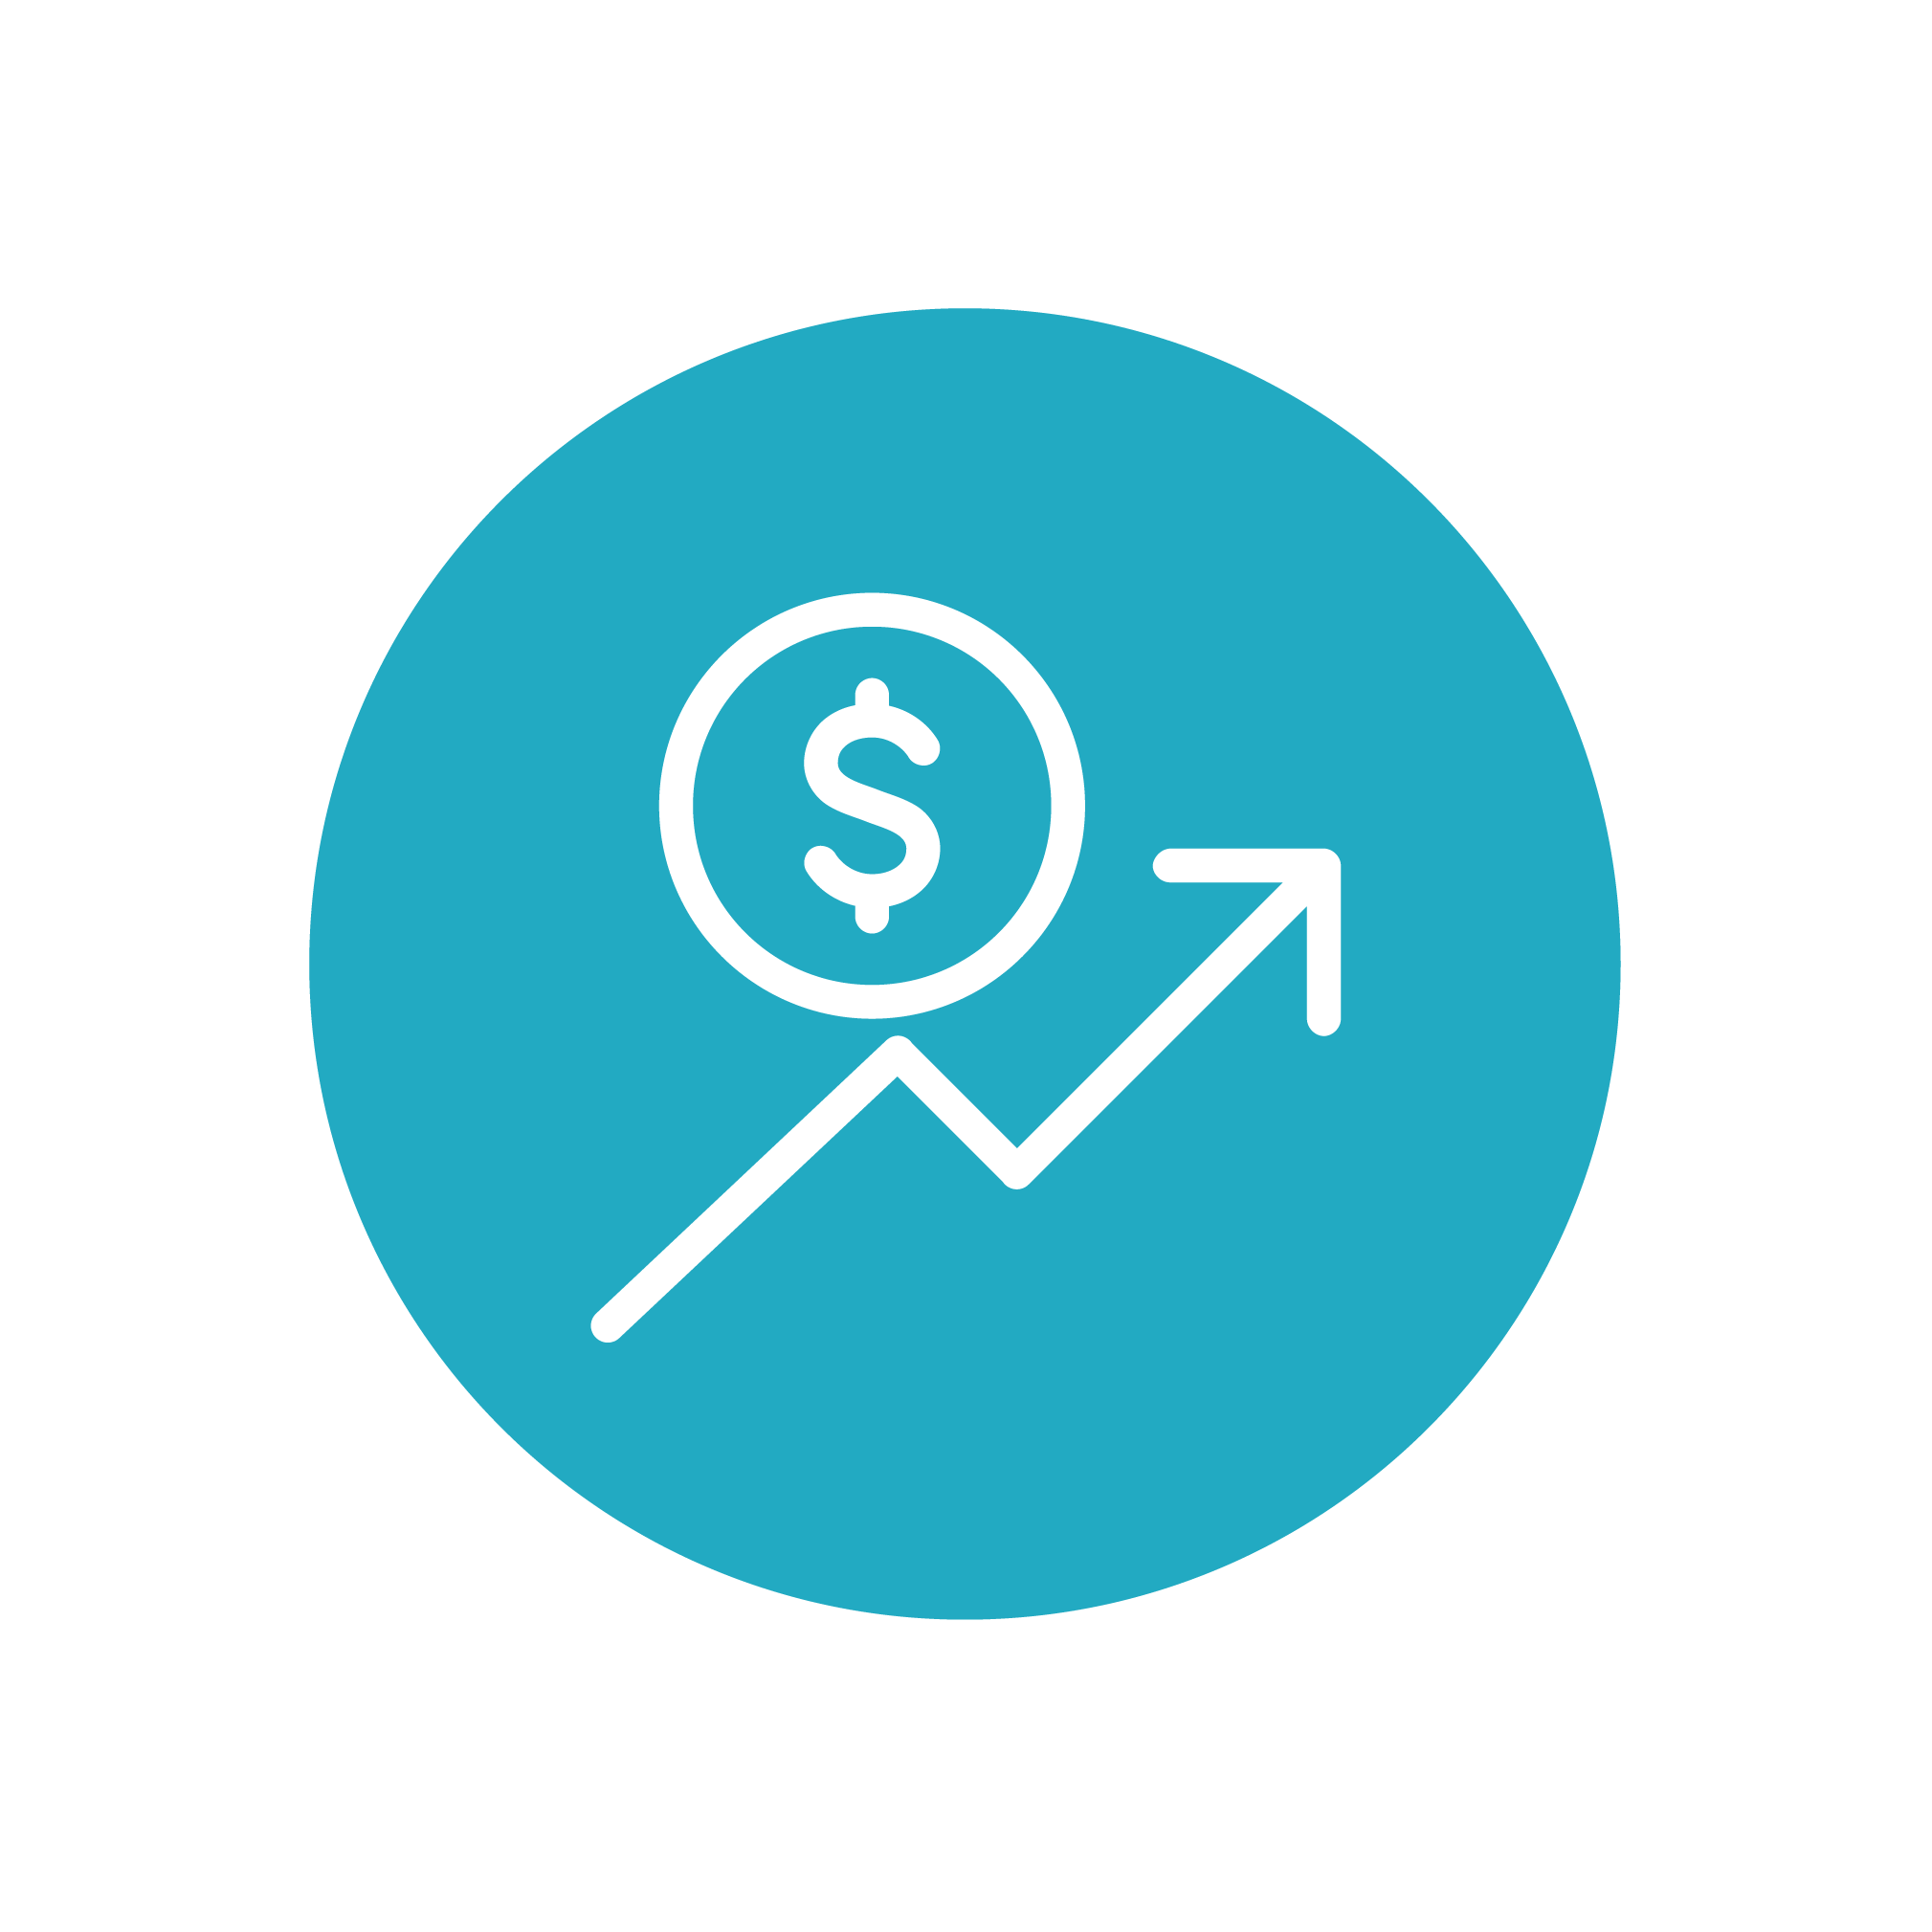 REVENUE STREAM - We use a deposit system to ensure reusables have a monetary value for patrons. This ensures the cost of the product is neutral and can ultimately create a new revenue stream.